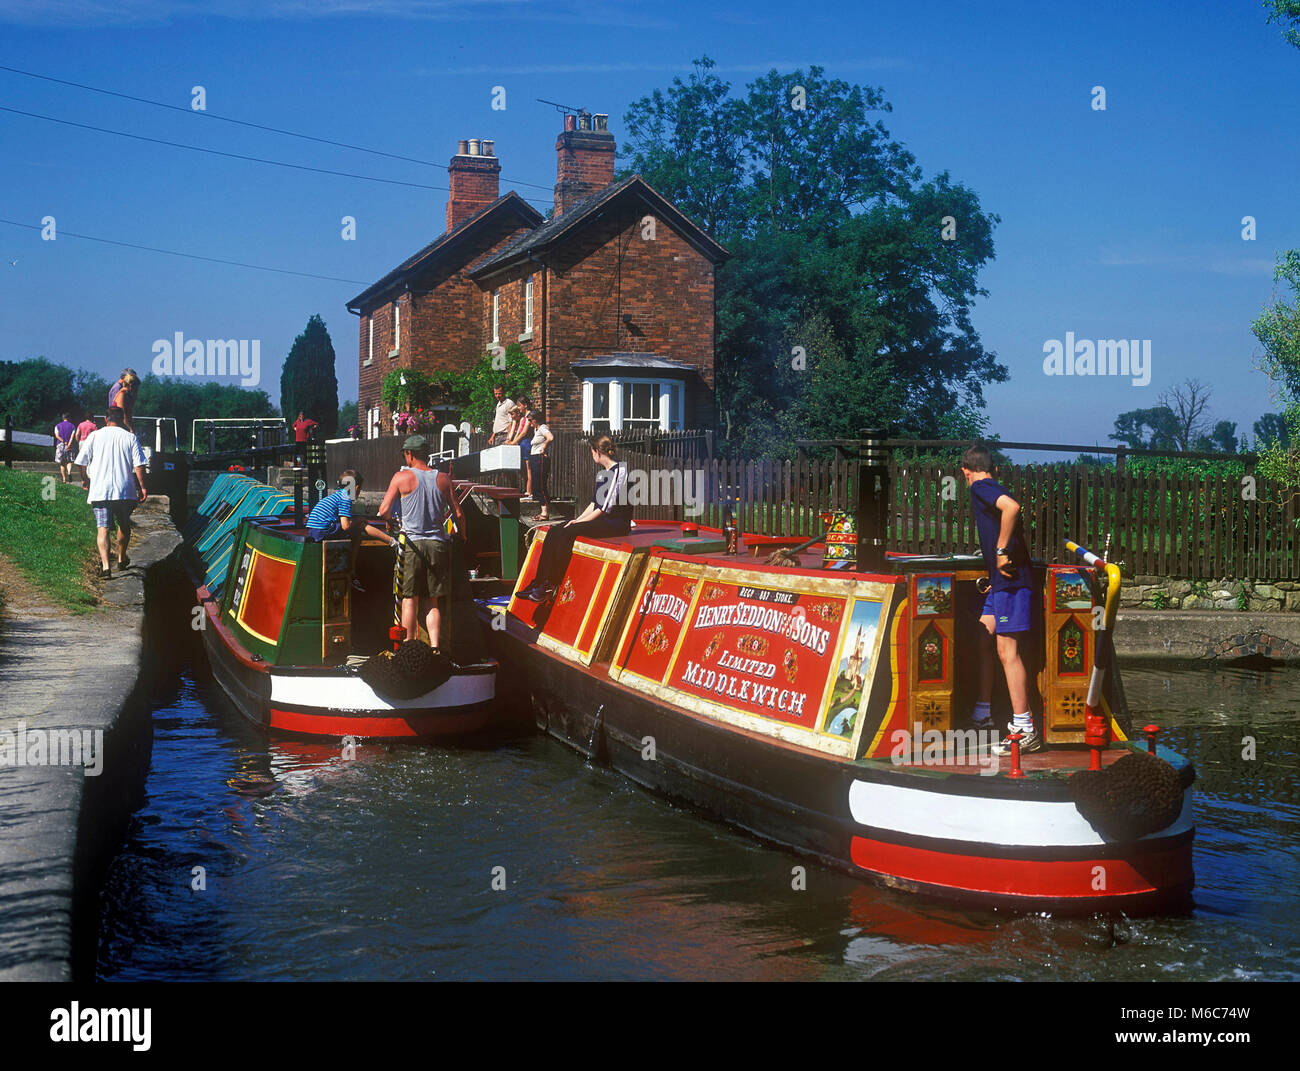 AB/M44A11/14 - Trent and Mersey Canal at Shardlow, Derbyshire - Stock Image